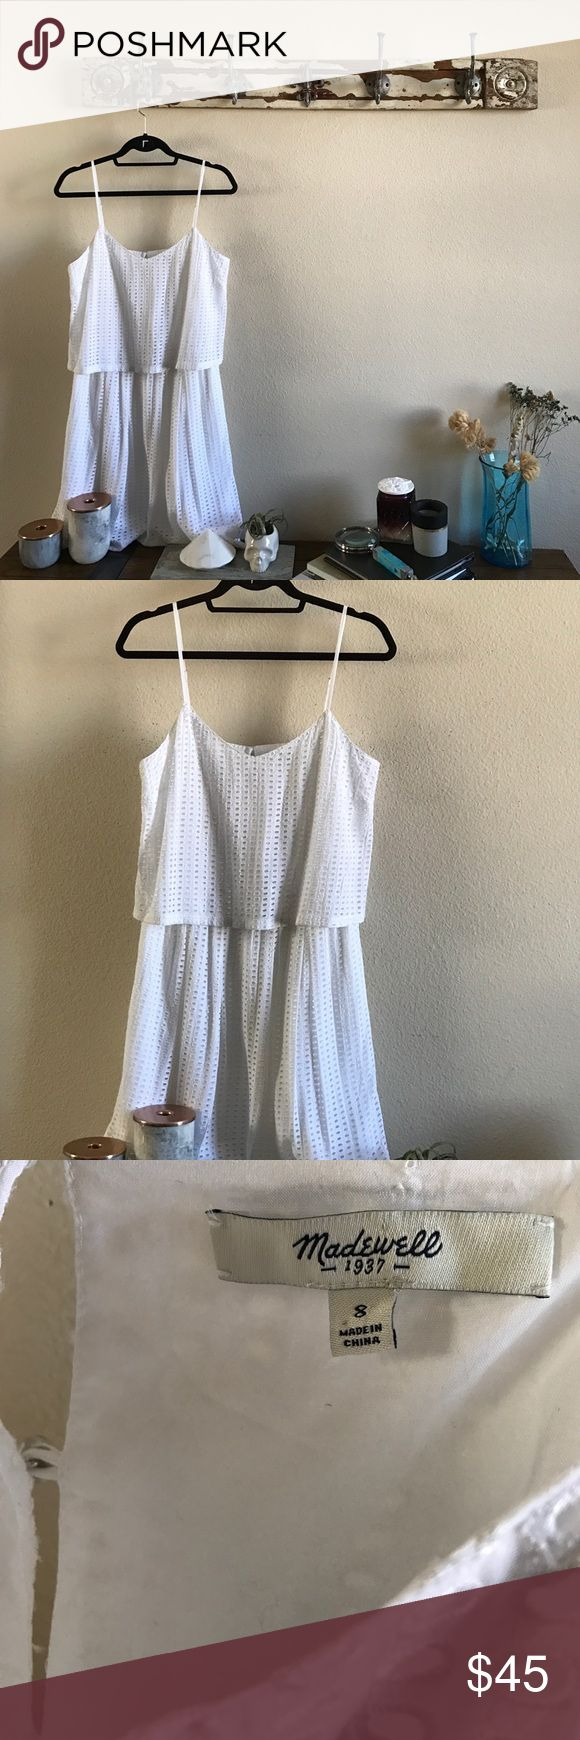 MADEWELL Eyelet Summer Dress NWOT and in perfect condition. LOVEEEE the chic silver hardware. I now offer 20% off any 2! Madewell Dresses